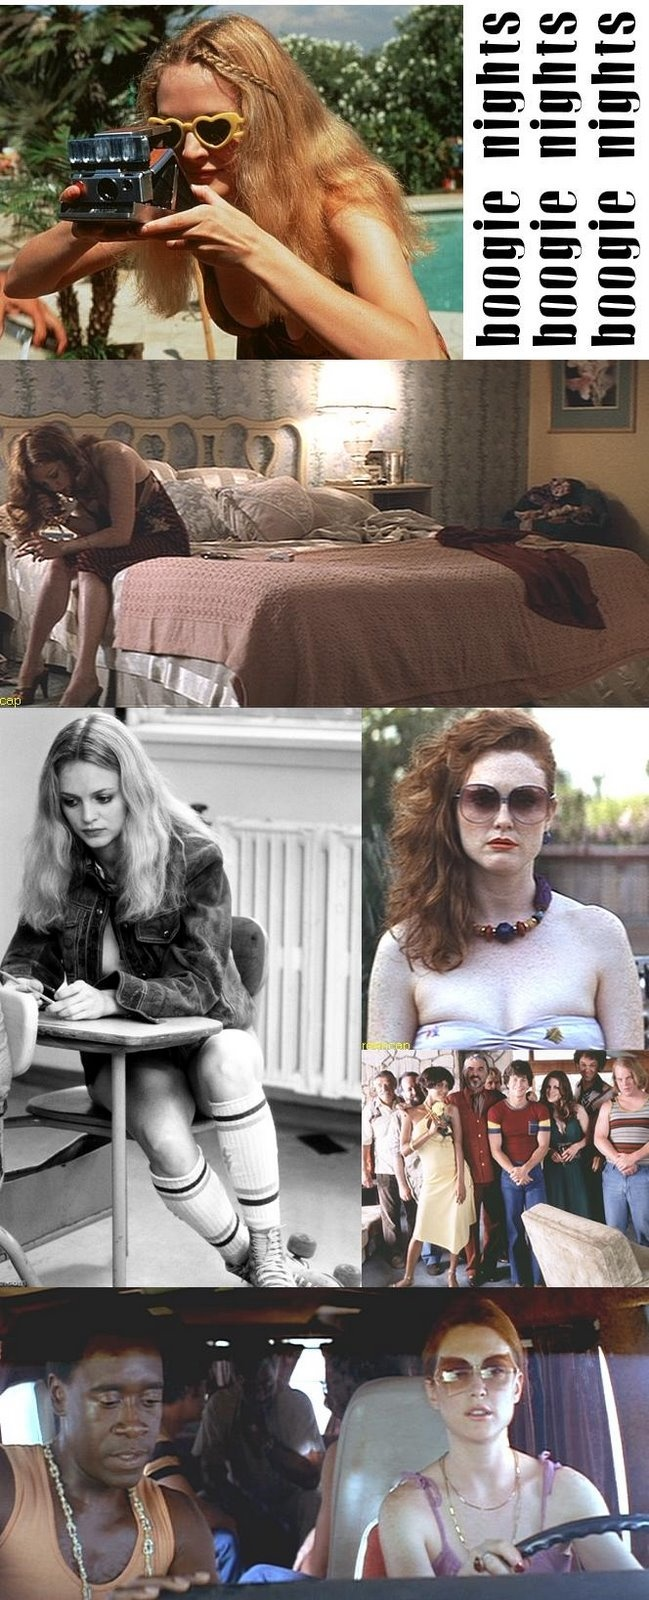 Inspiration: Movie fashion inspired by boogie nights